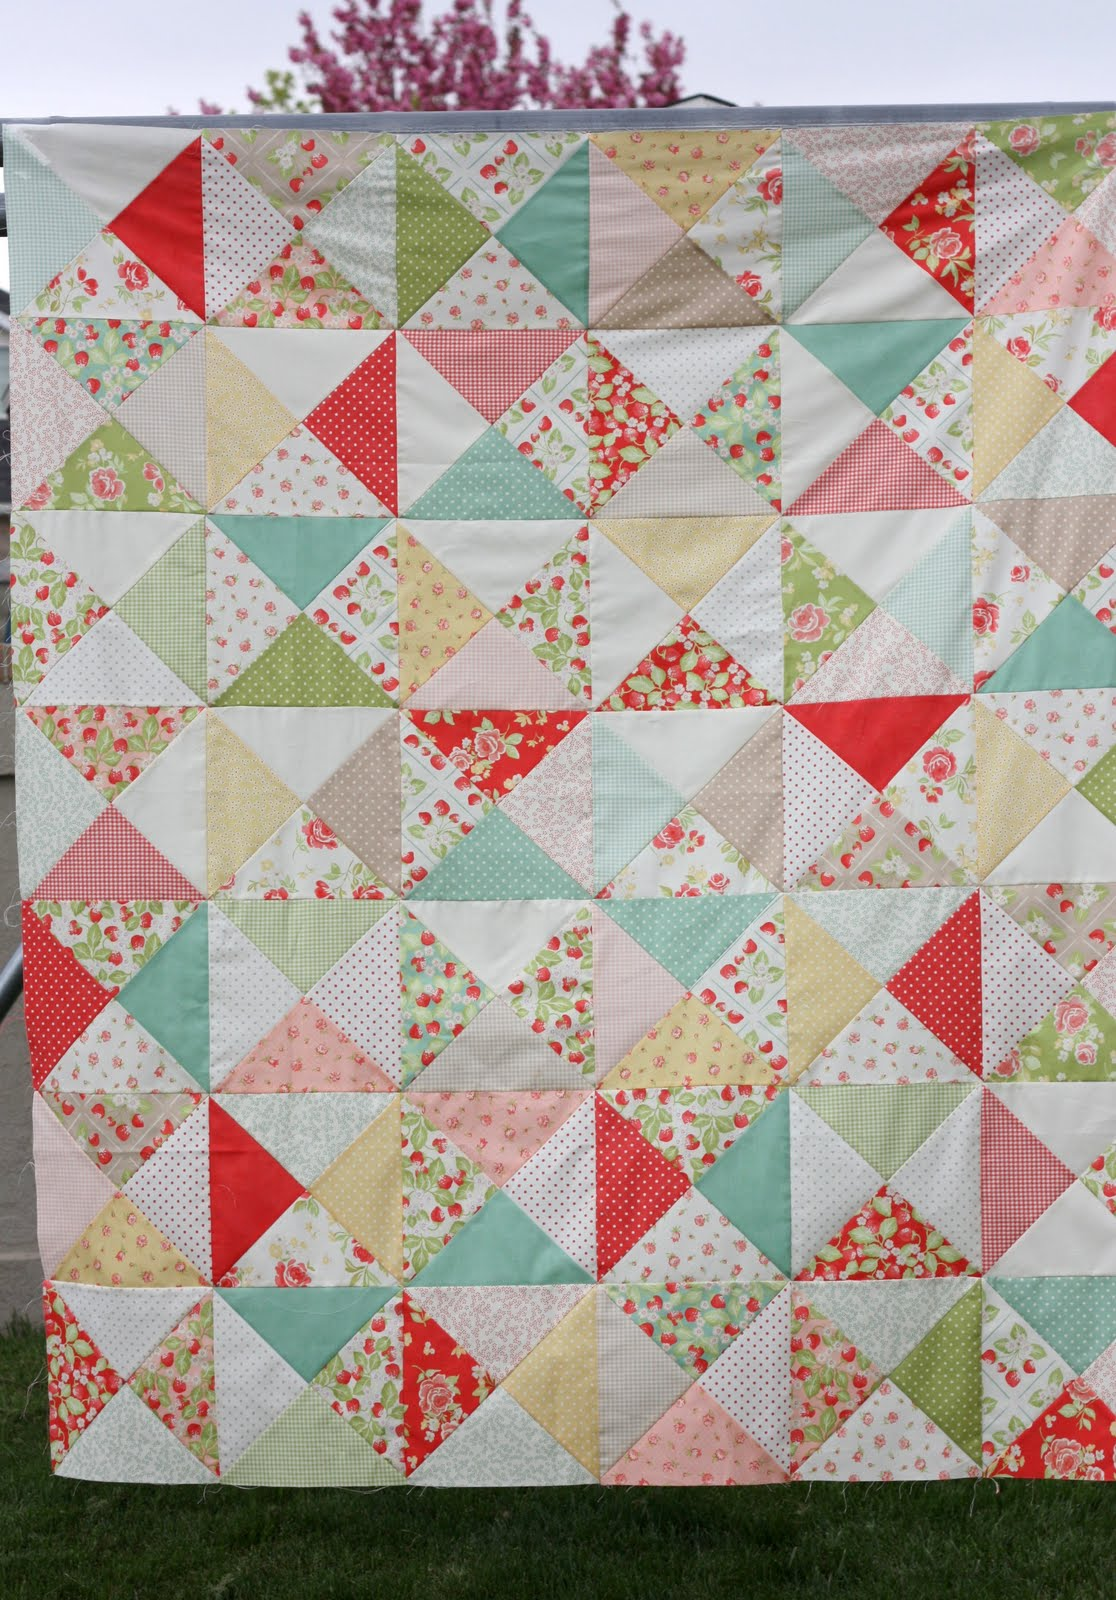 Easy Bricks Quilt Tutorial - Diary of a Quilter